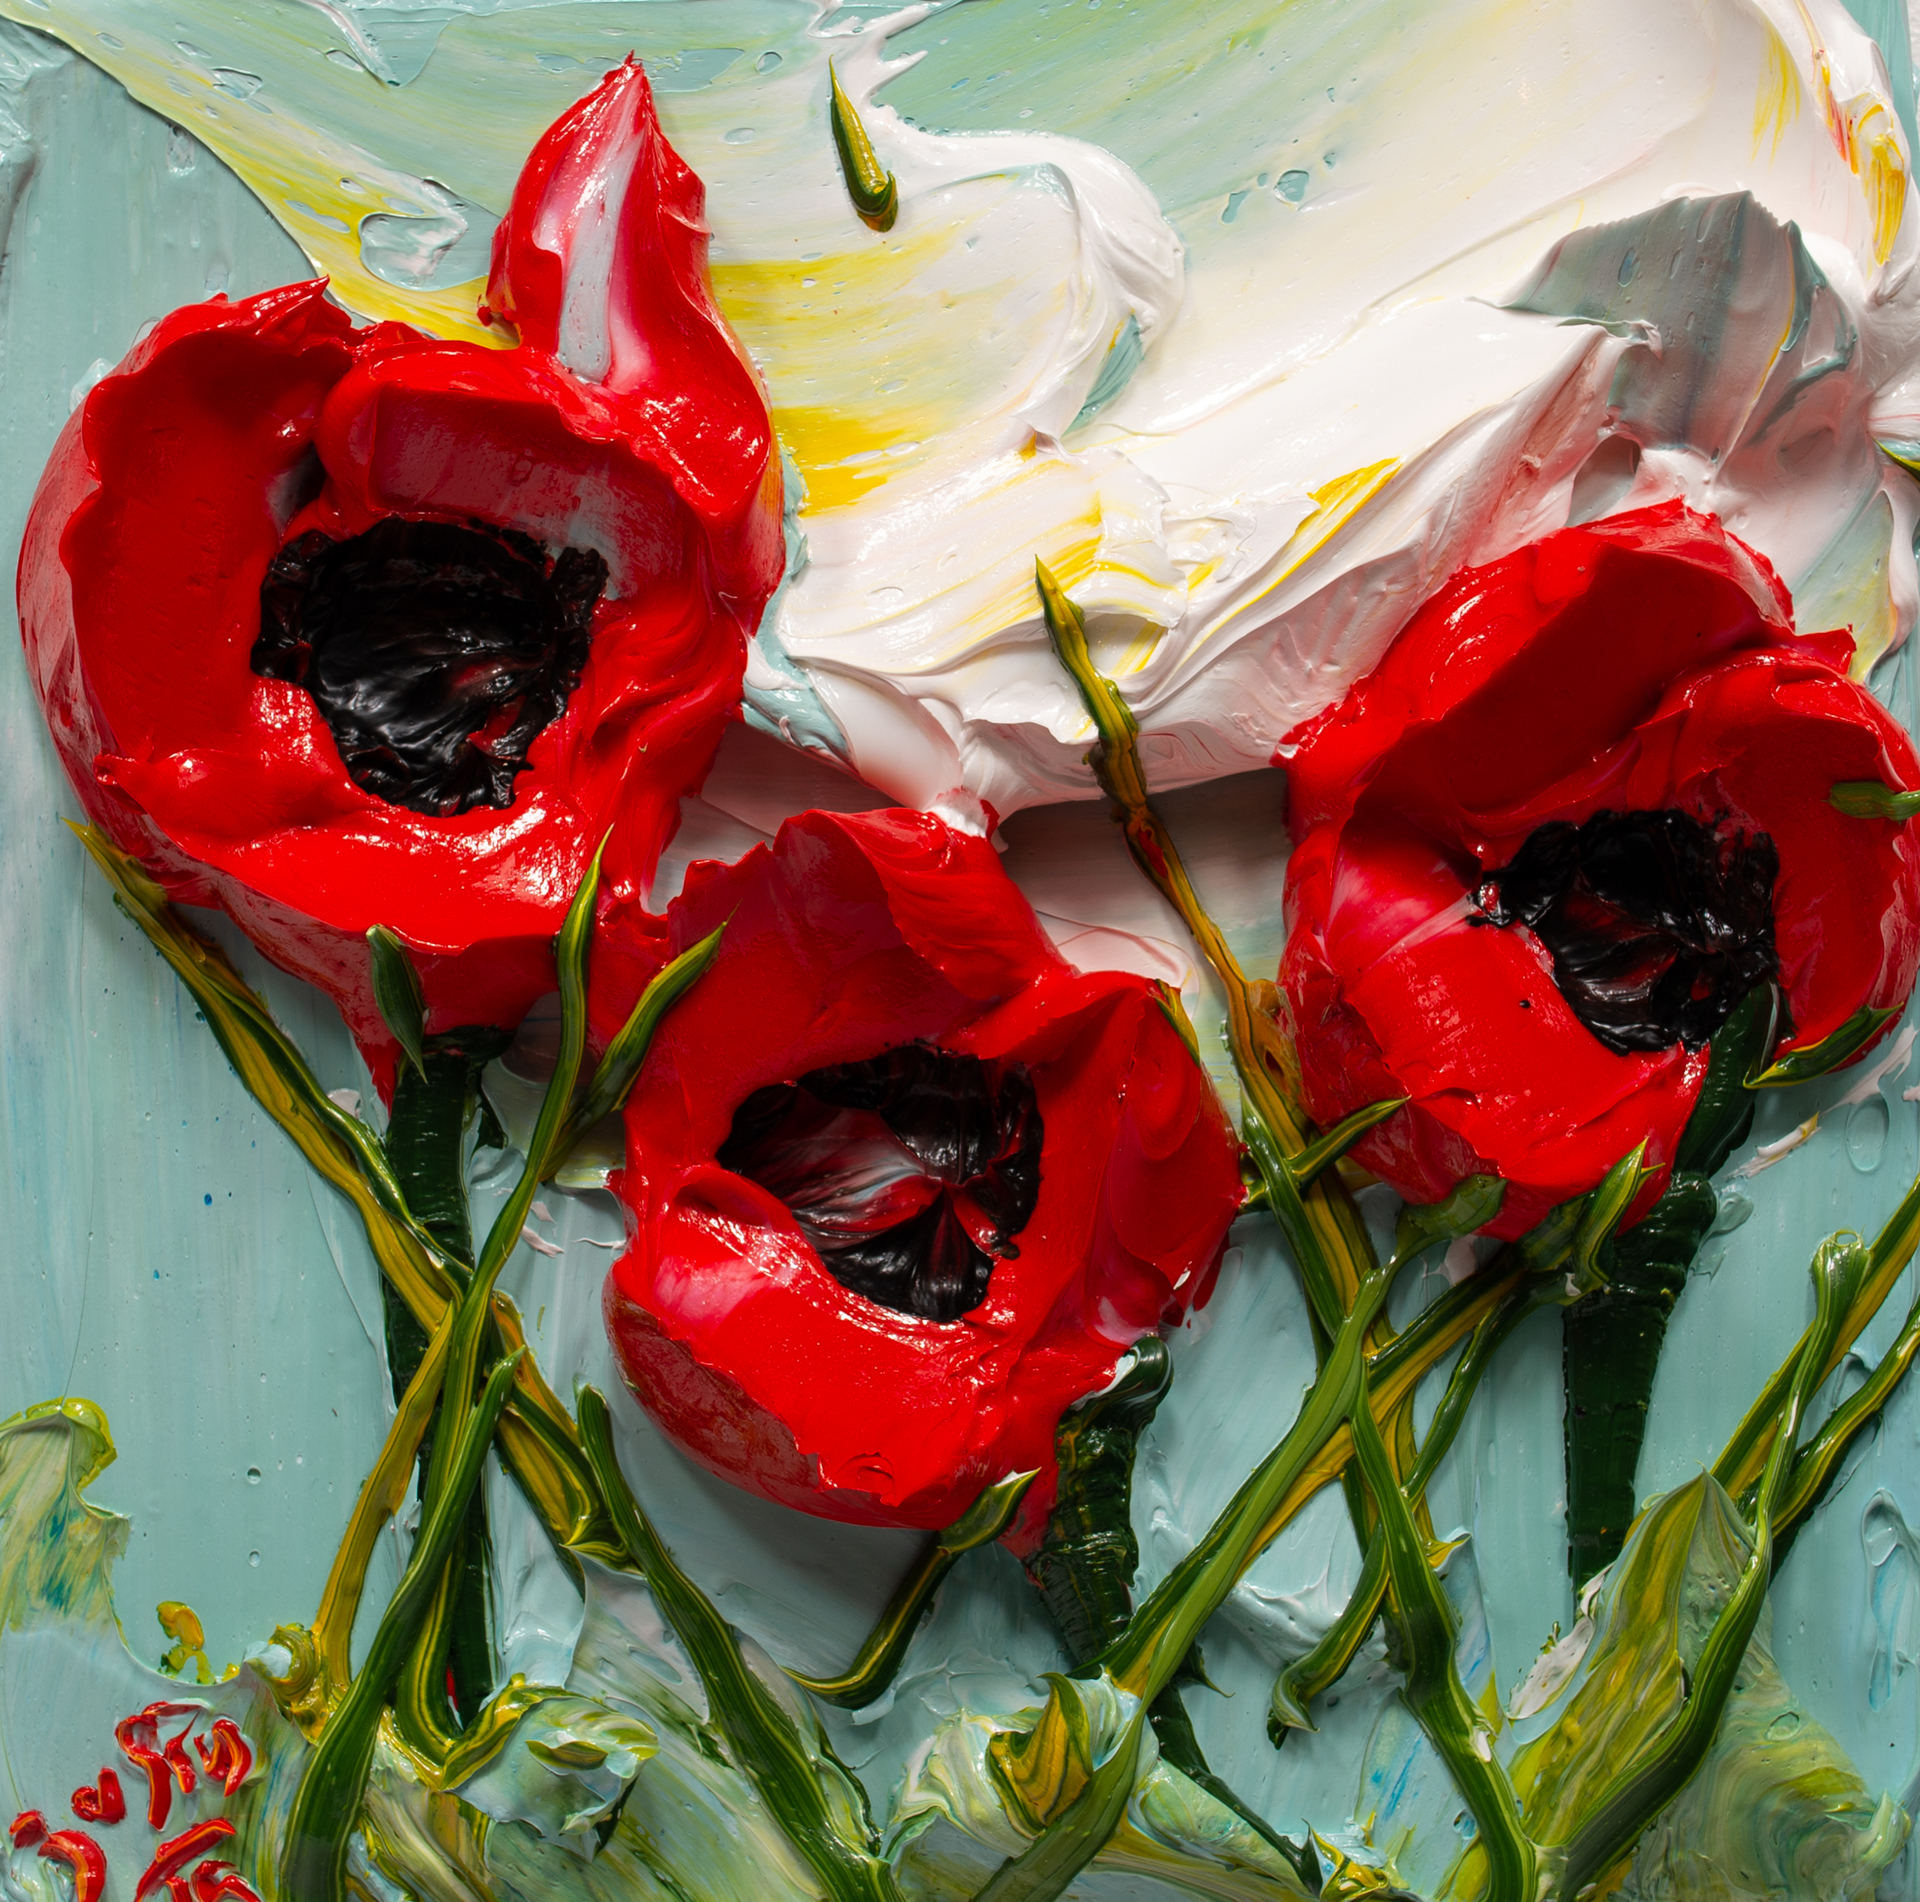 POPPY FLOWERS-PF-12X12-2019-179 by JUSTIN GAFFREY